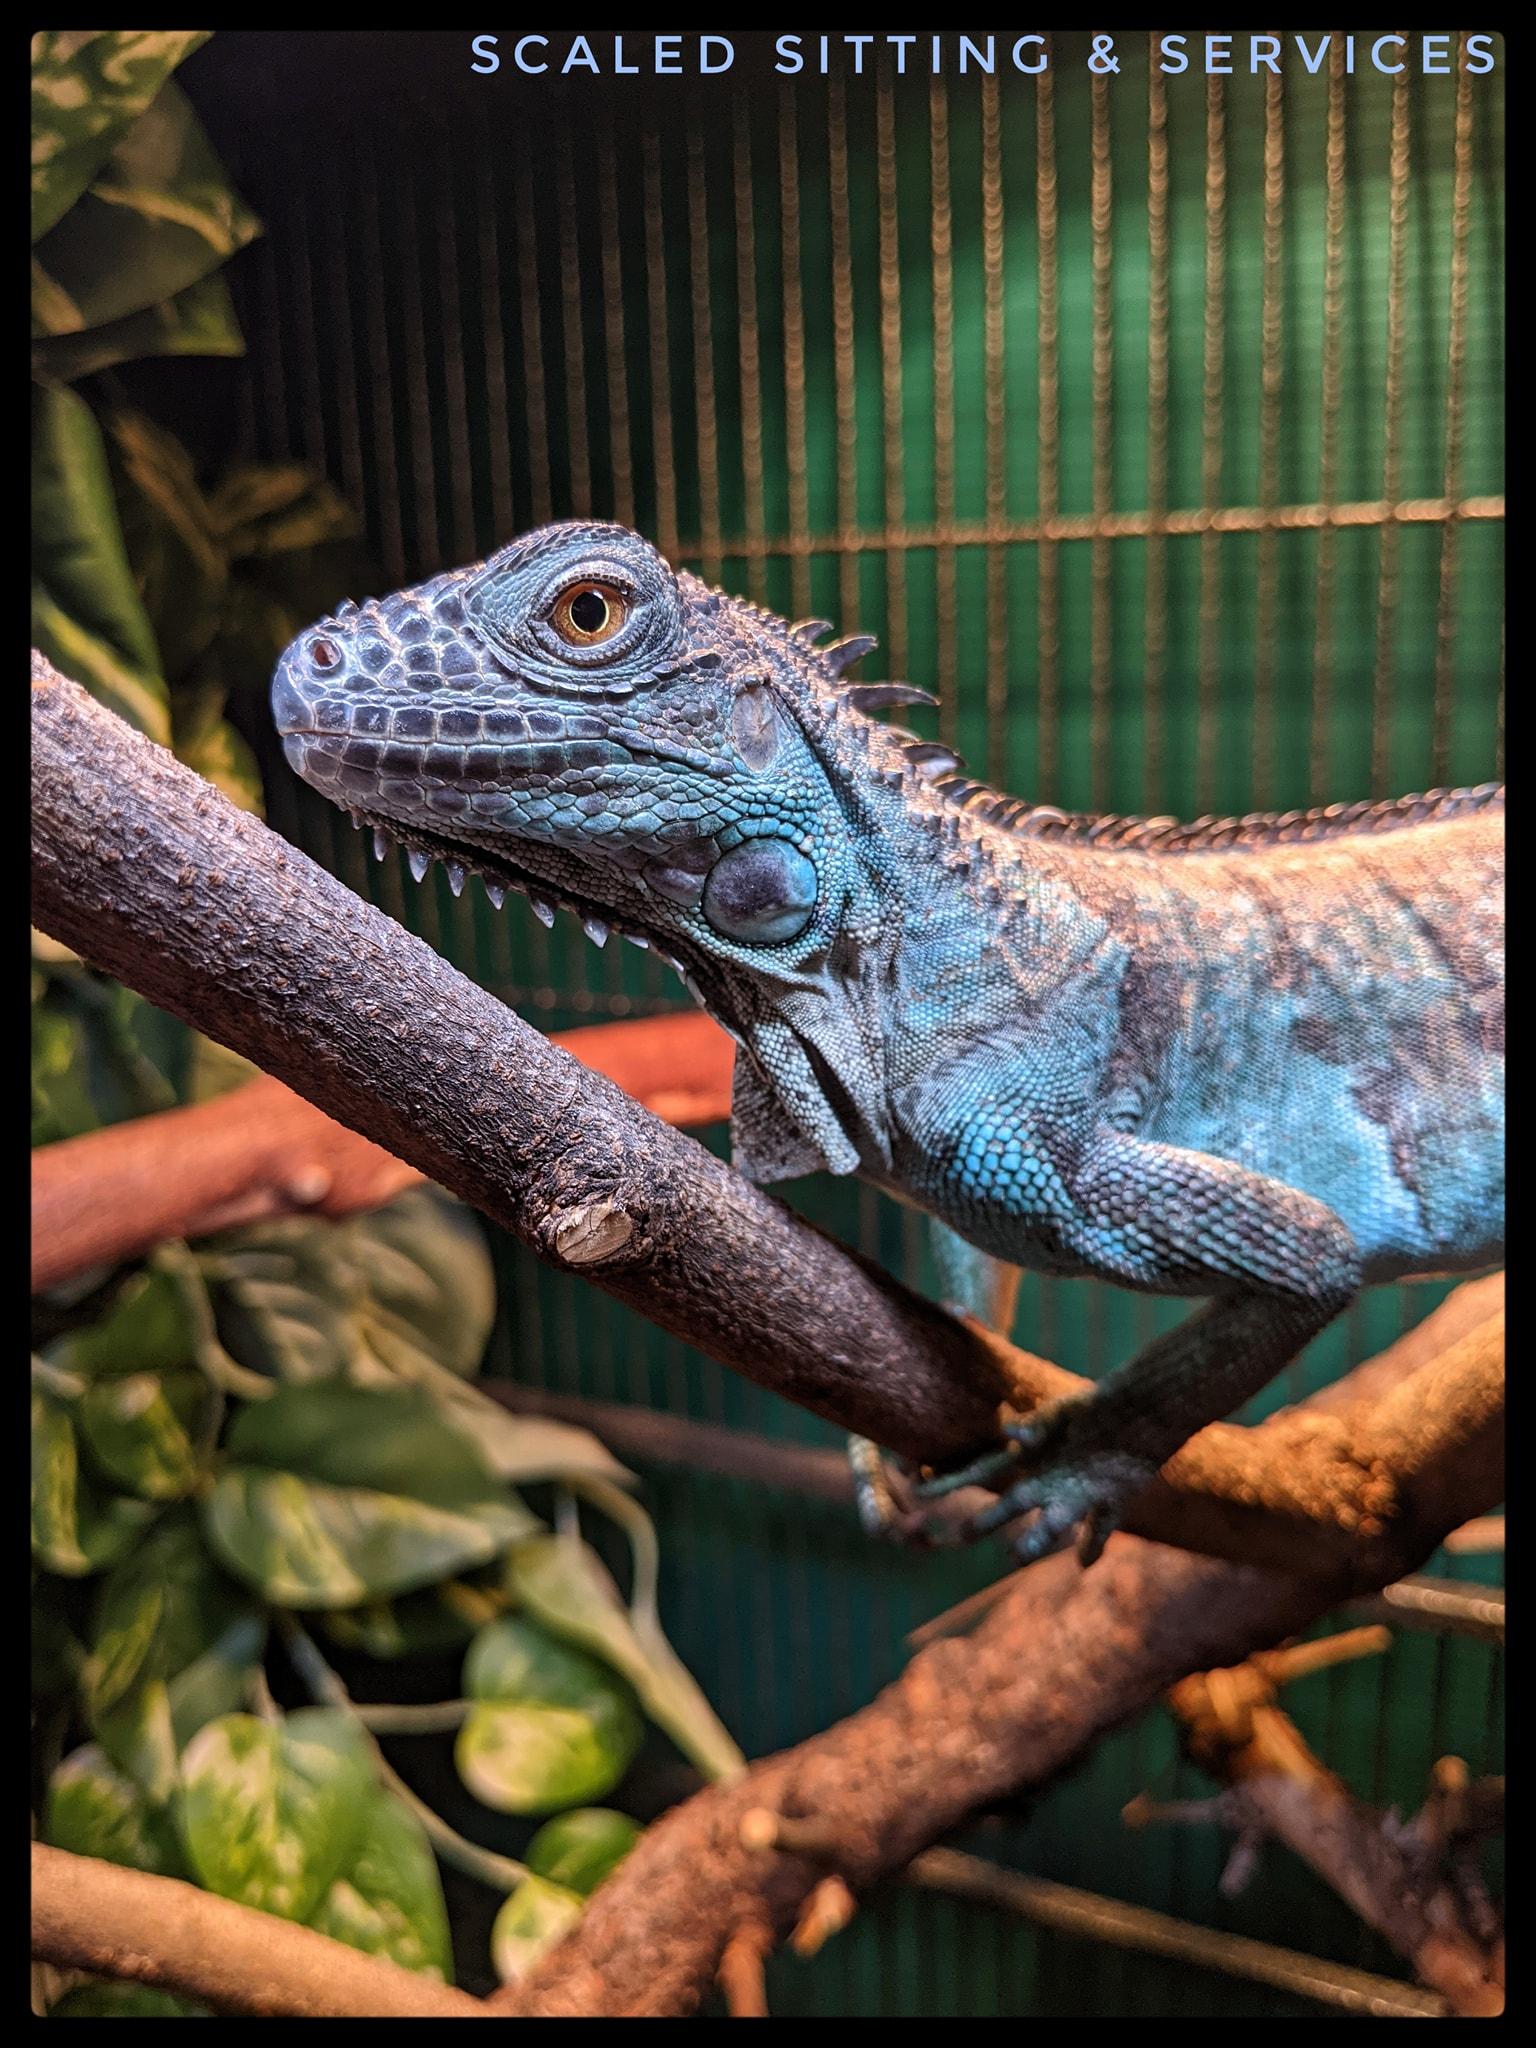 young blue iguana on branches basking under light